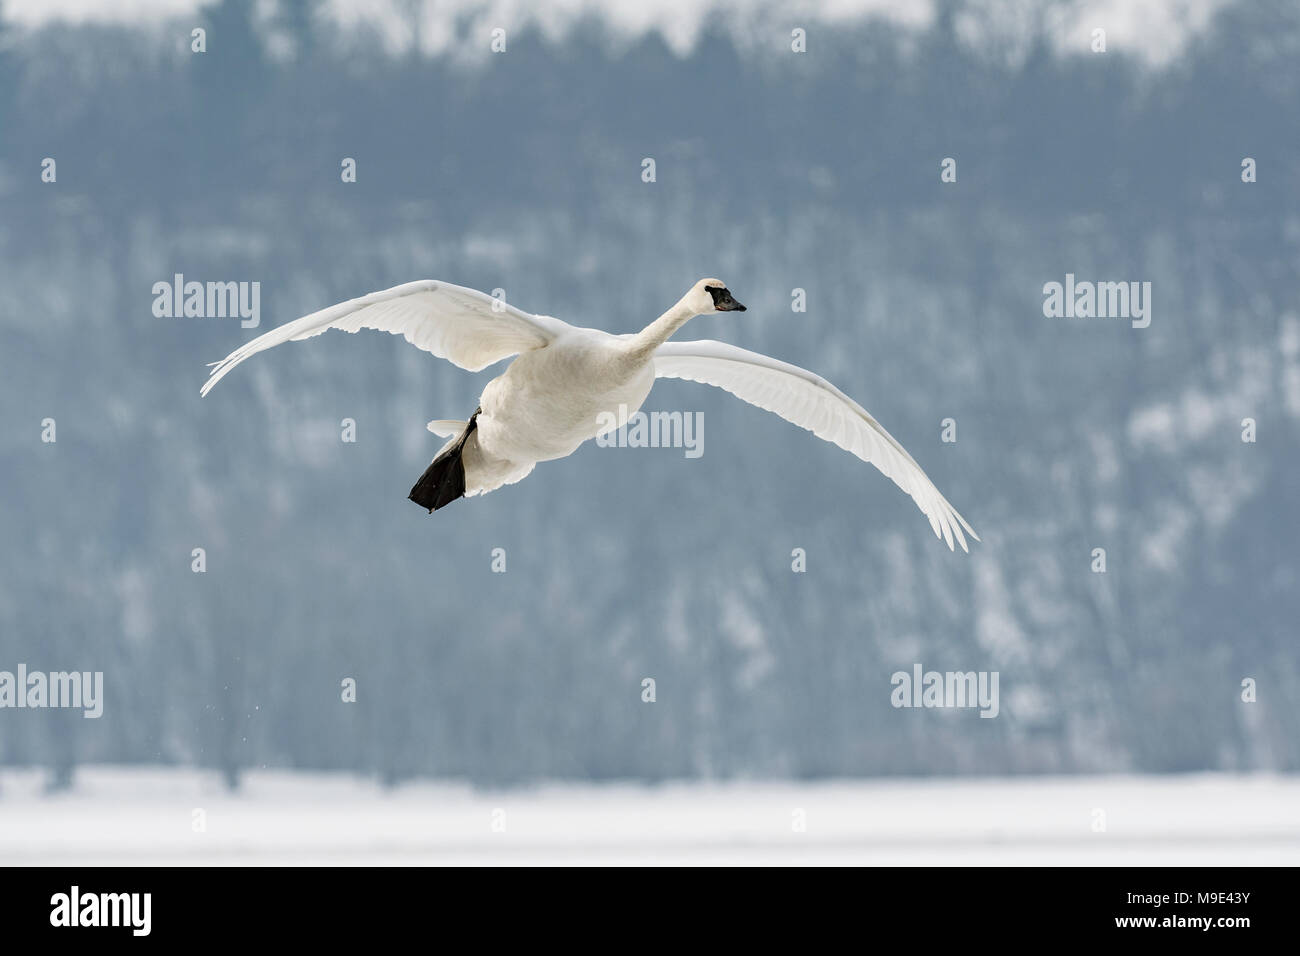 Trumpeter swan (Cygnus buccinator) landing on St. Croix River, WI, USA, mid-January, by Dominique Braud/Dembinsky Photo Assoc - Stock Image